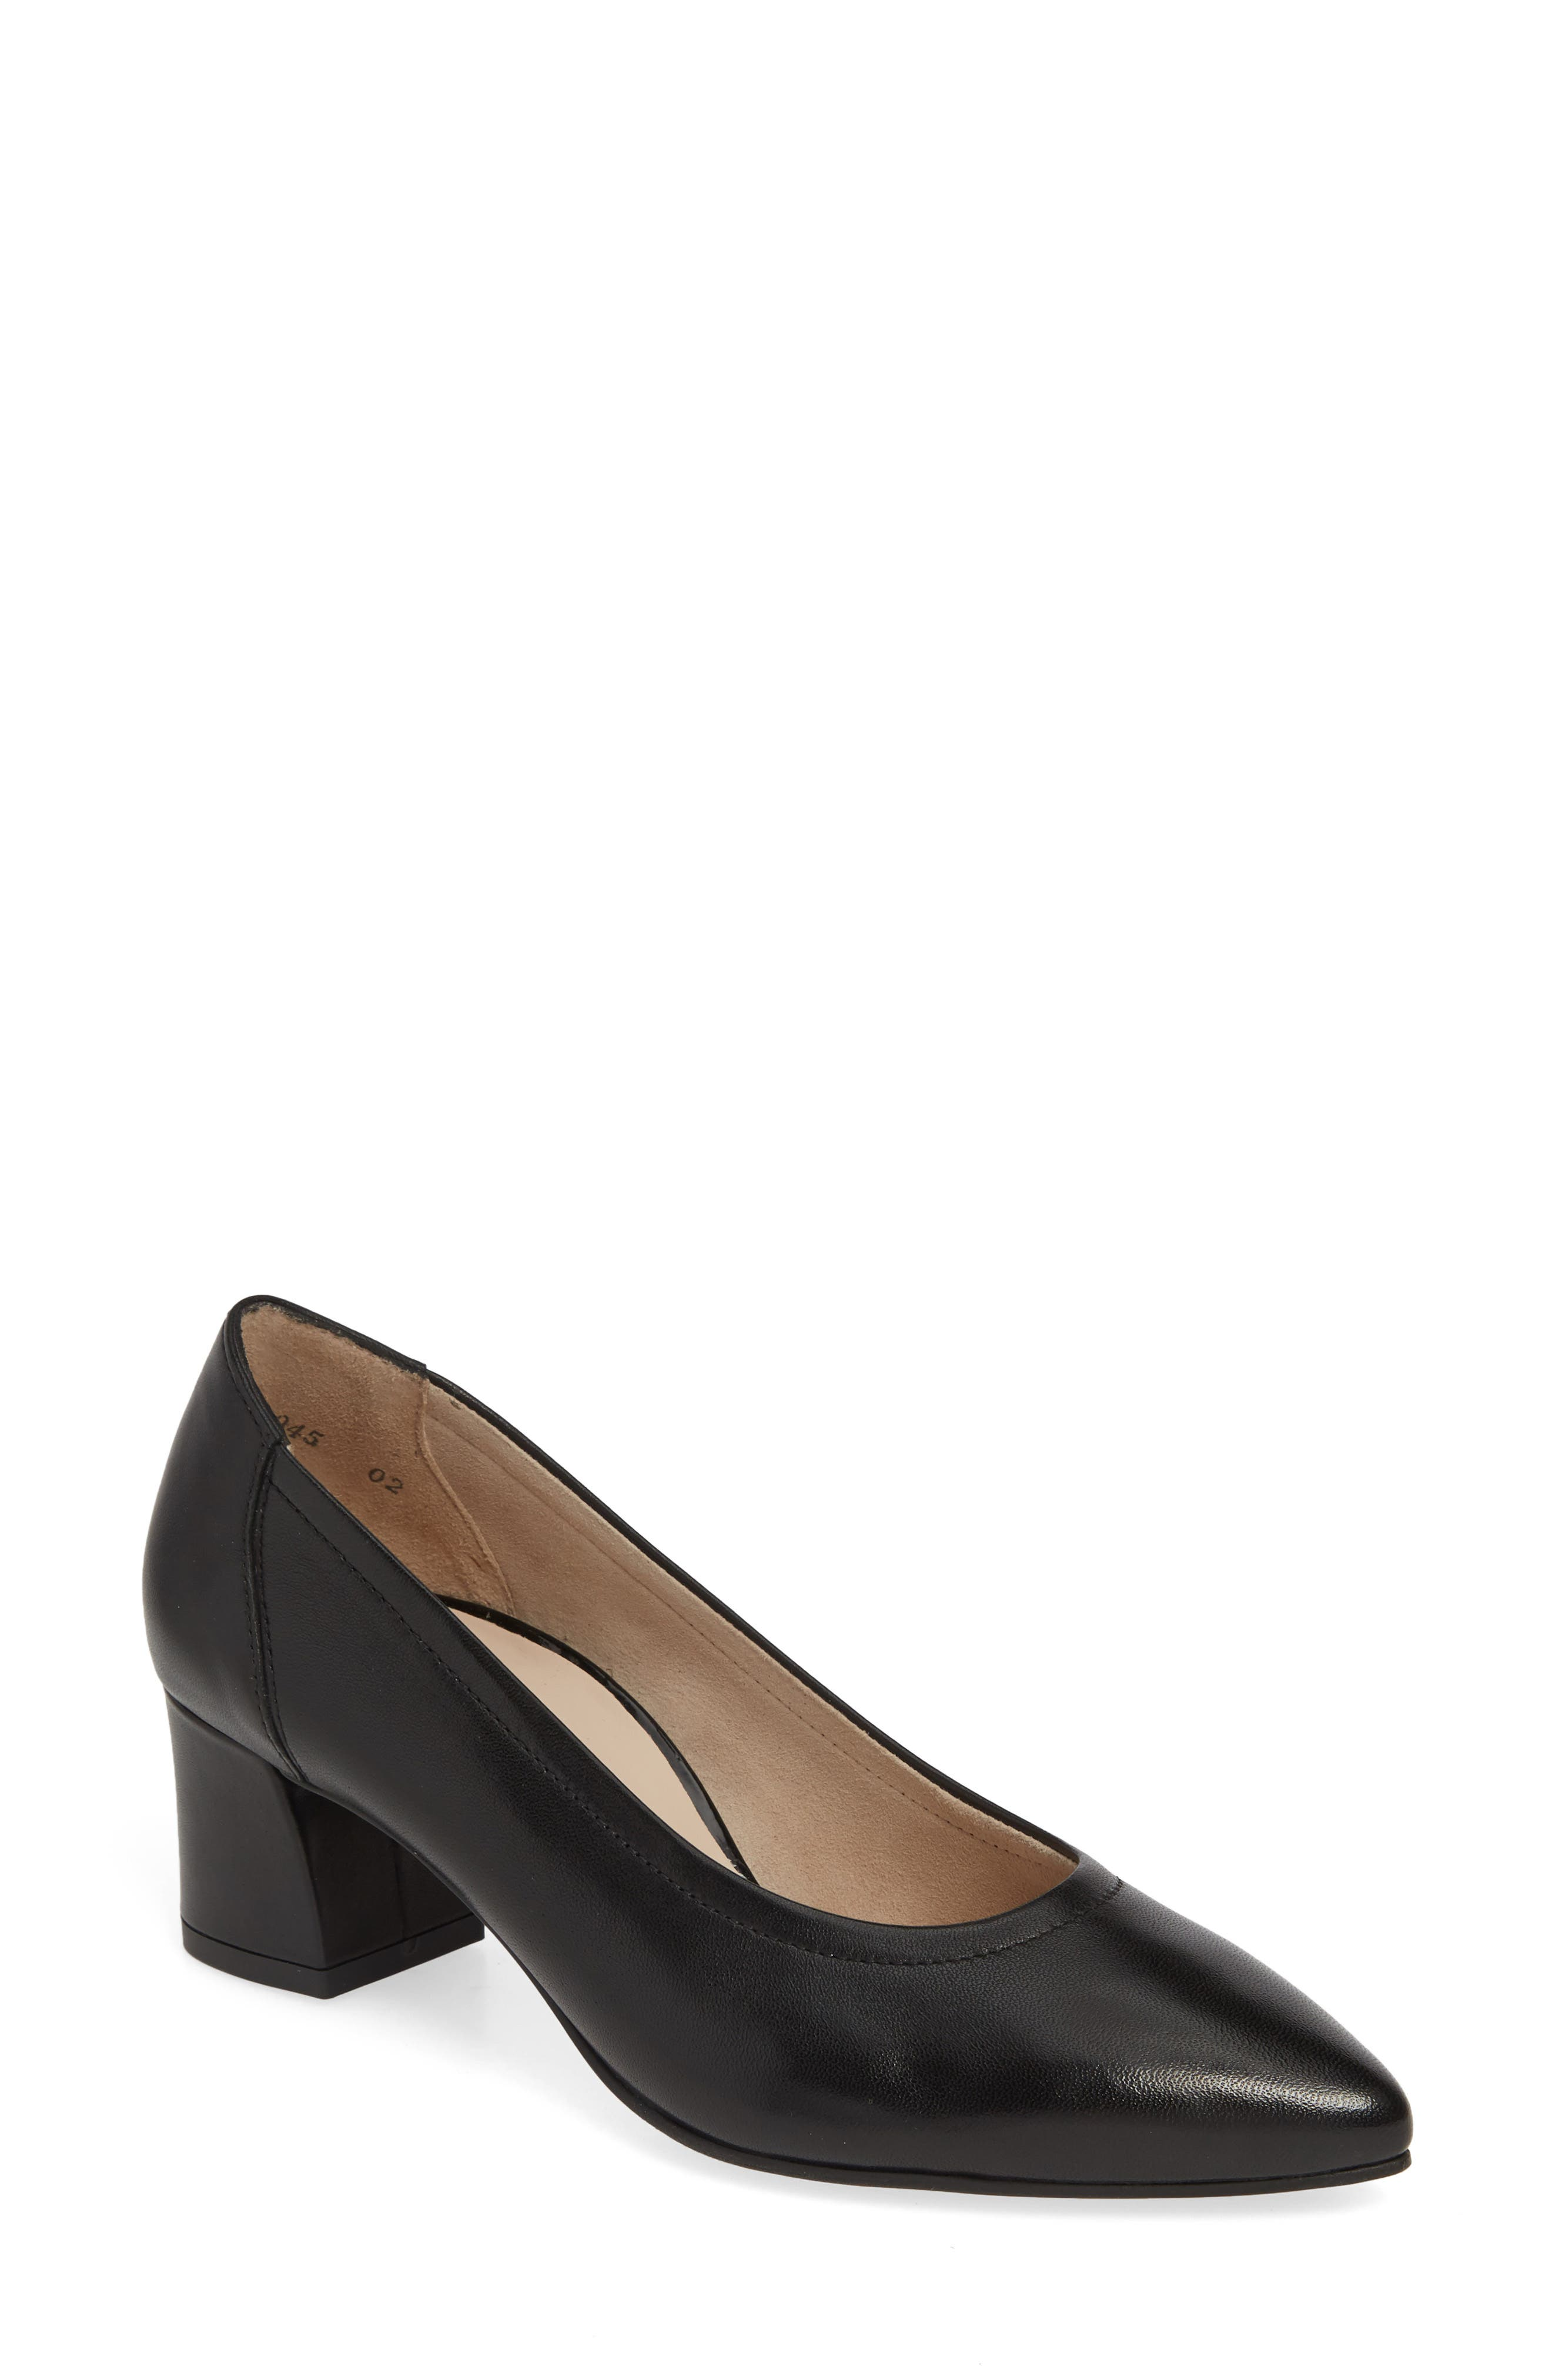 PAUL GREEN Tammy Pump, Main, color, BLACK SOFT NAPPA